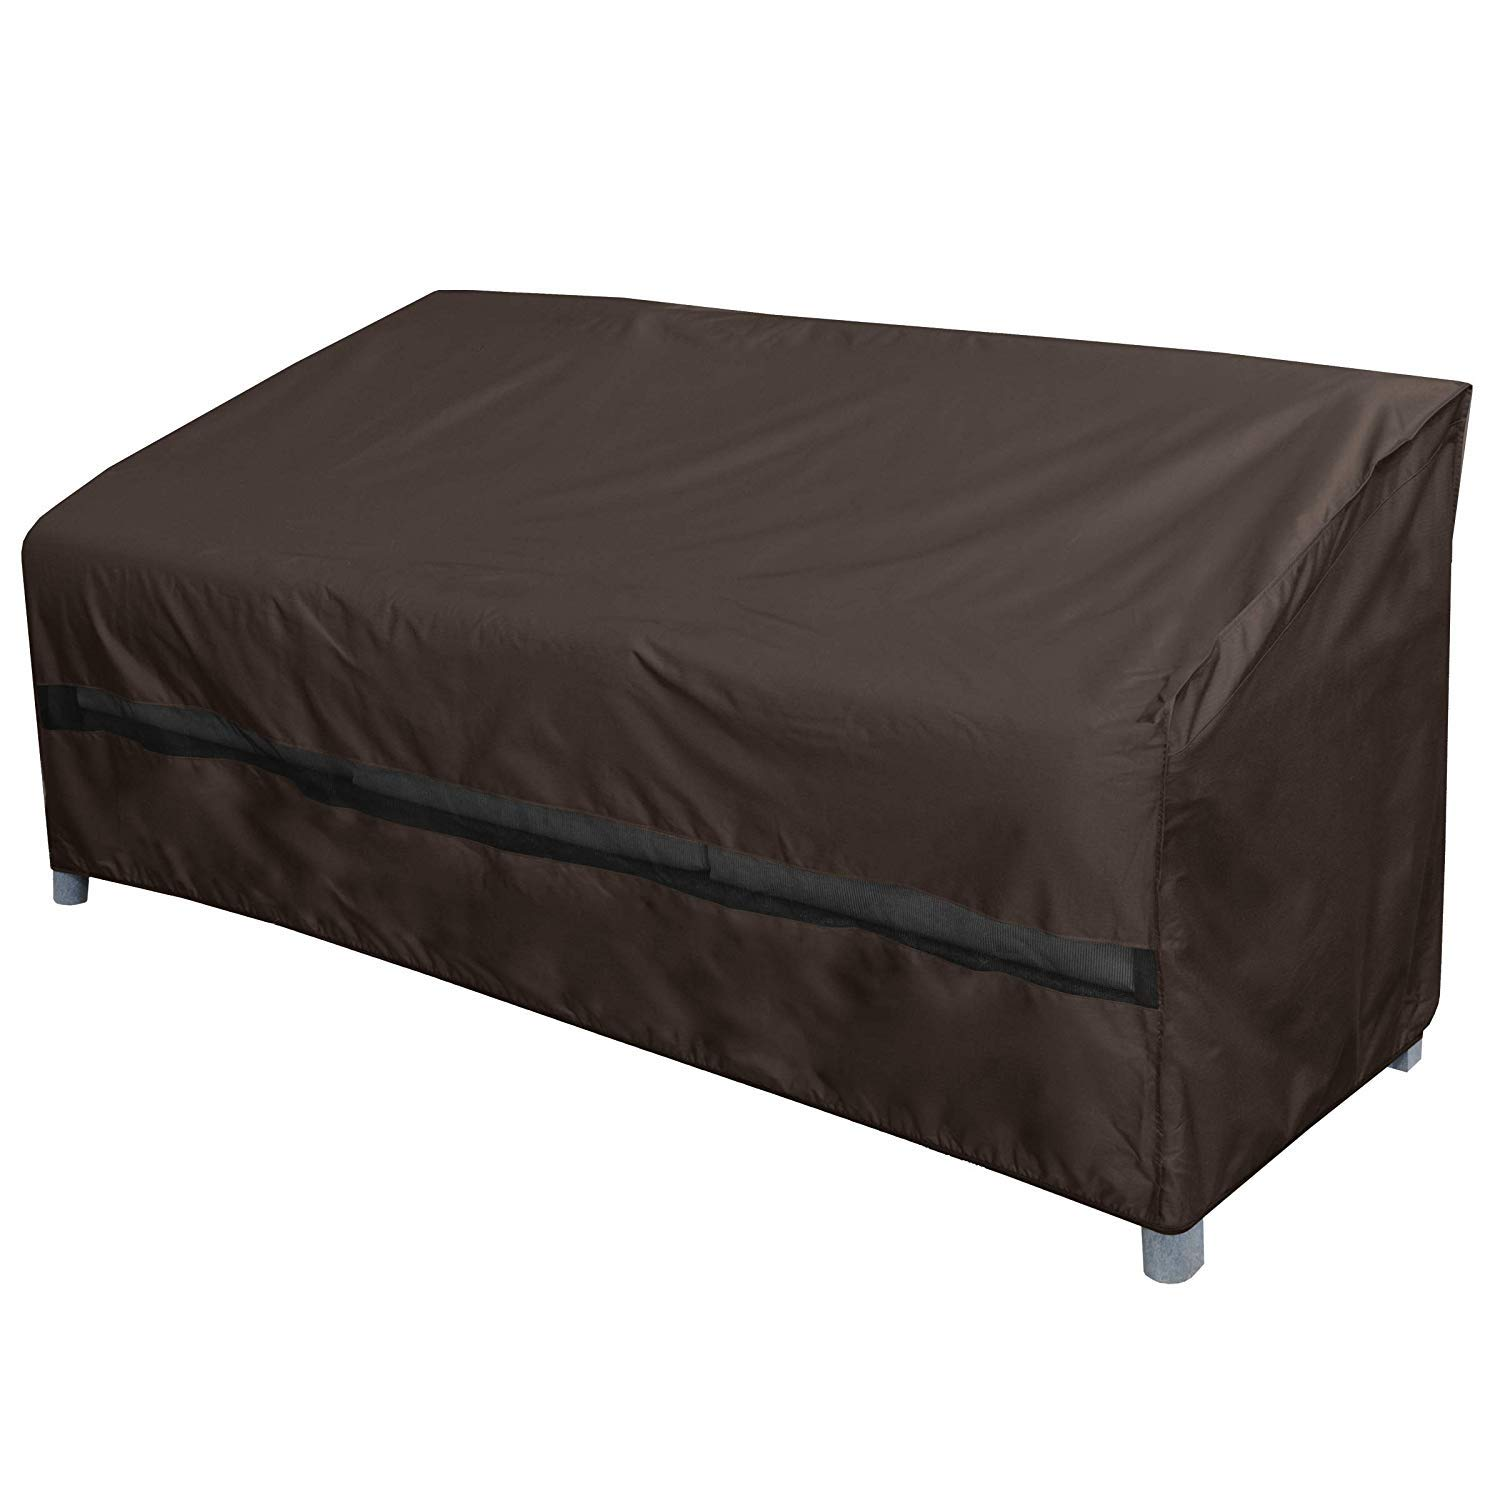 True Guard Patio Furniture Covers Waterproof Heavy Duty - Sofa or Couch Cover, 600D Rip-Stop, Fade/Stain/UV Resistant for Outdoor Patio Furniture, Dark Brown by True Guard